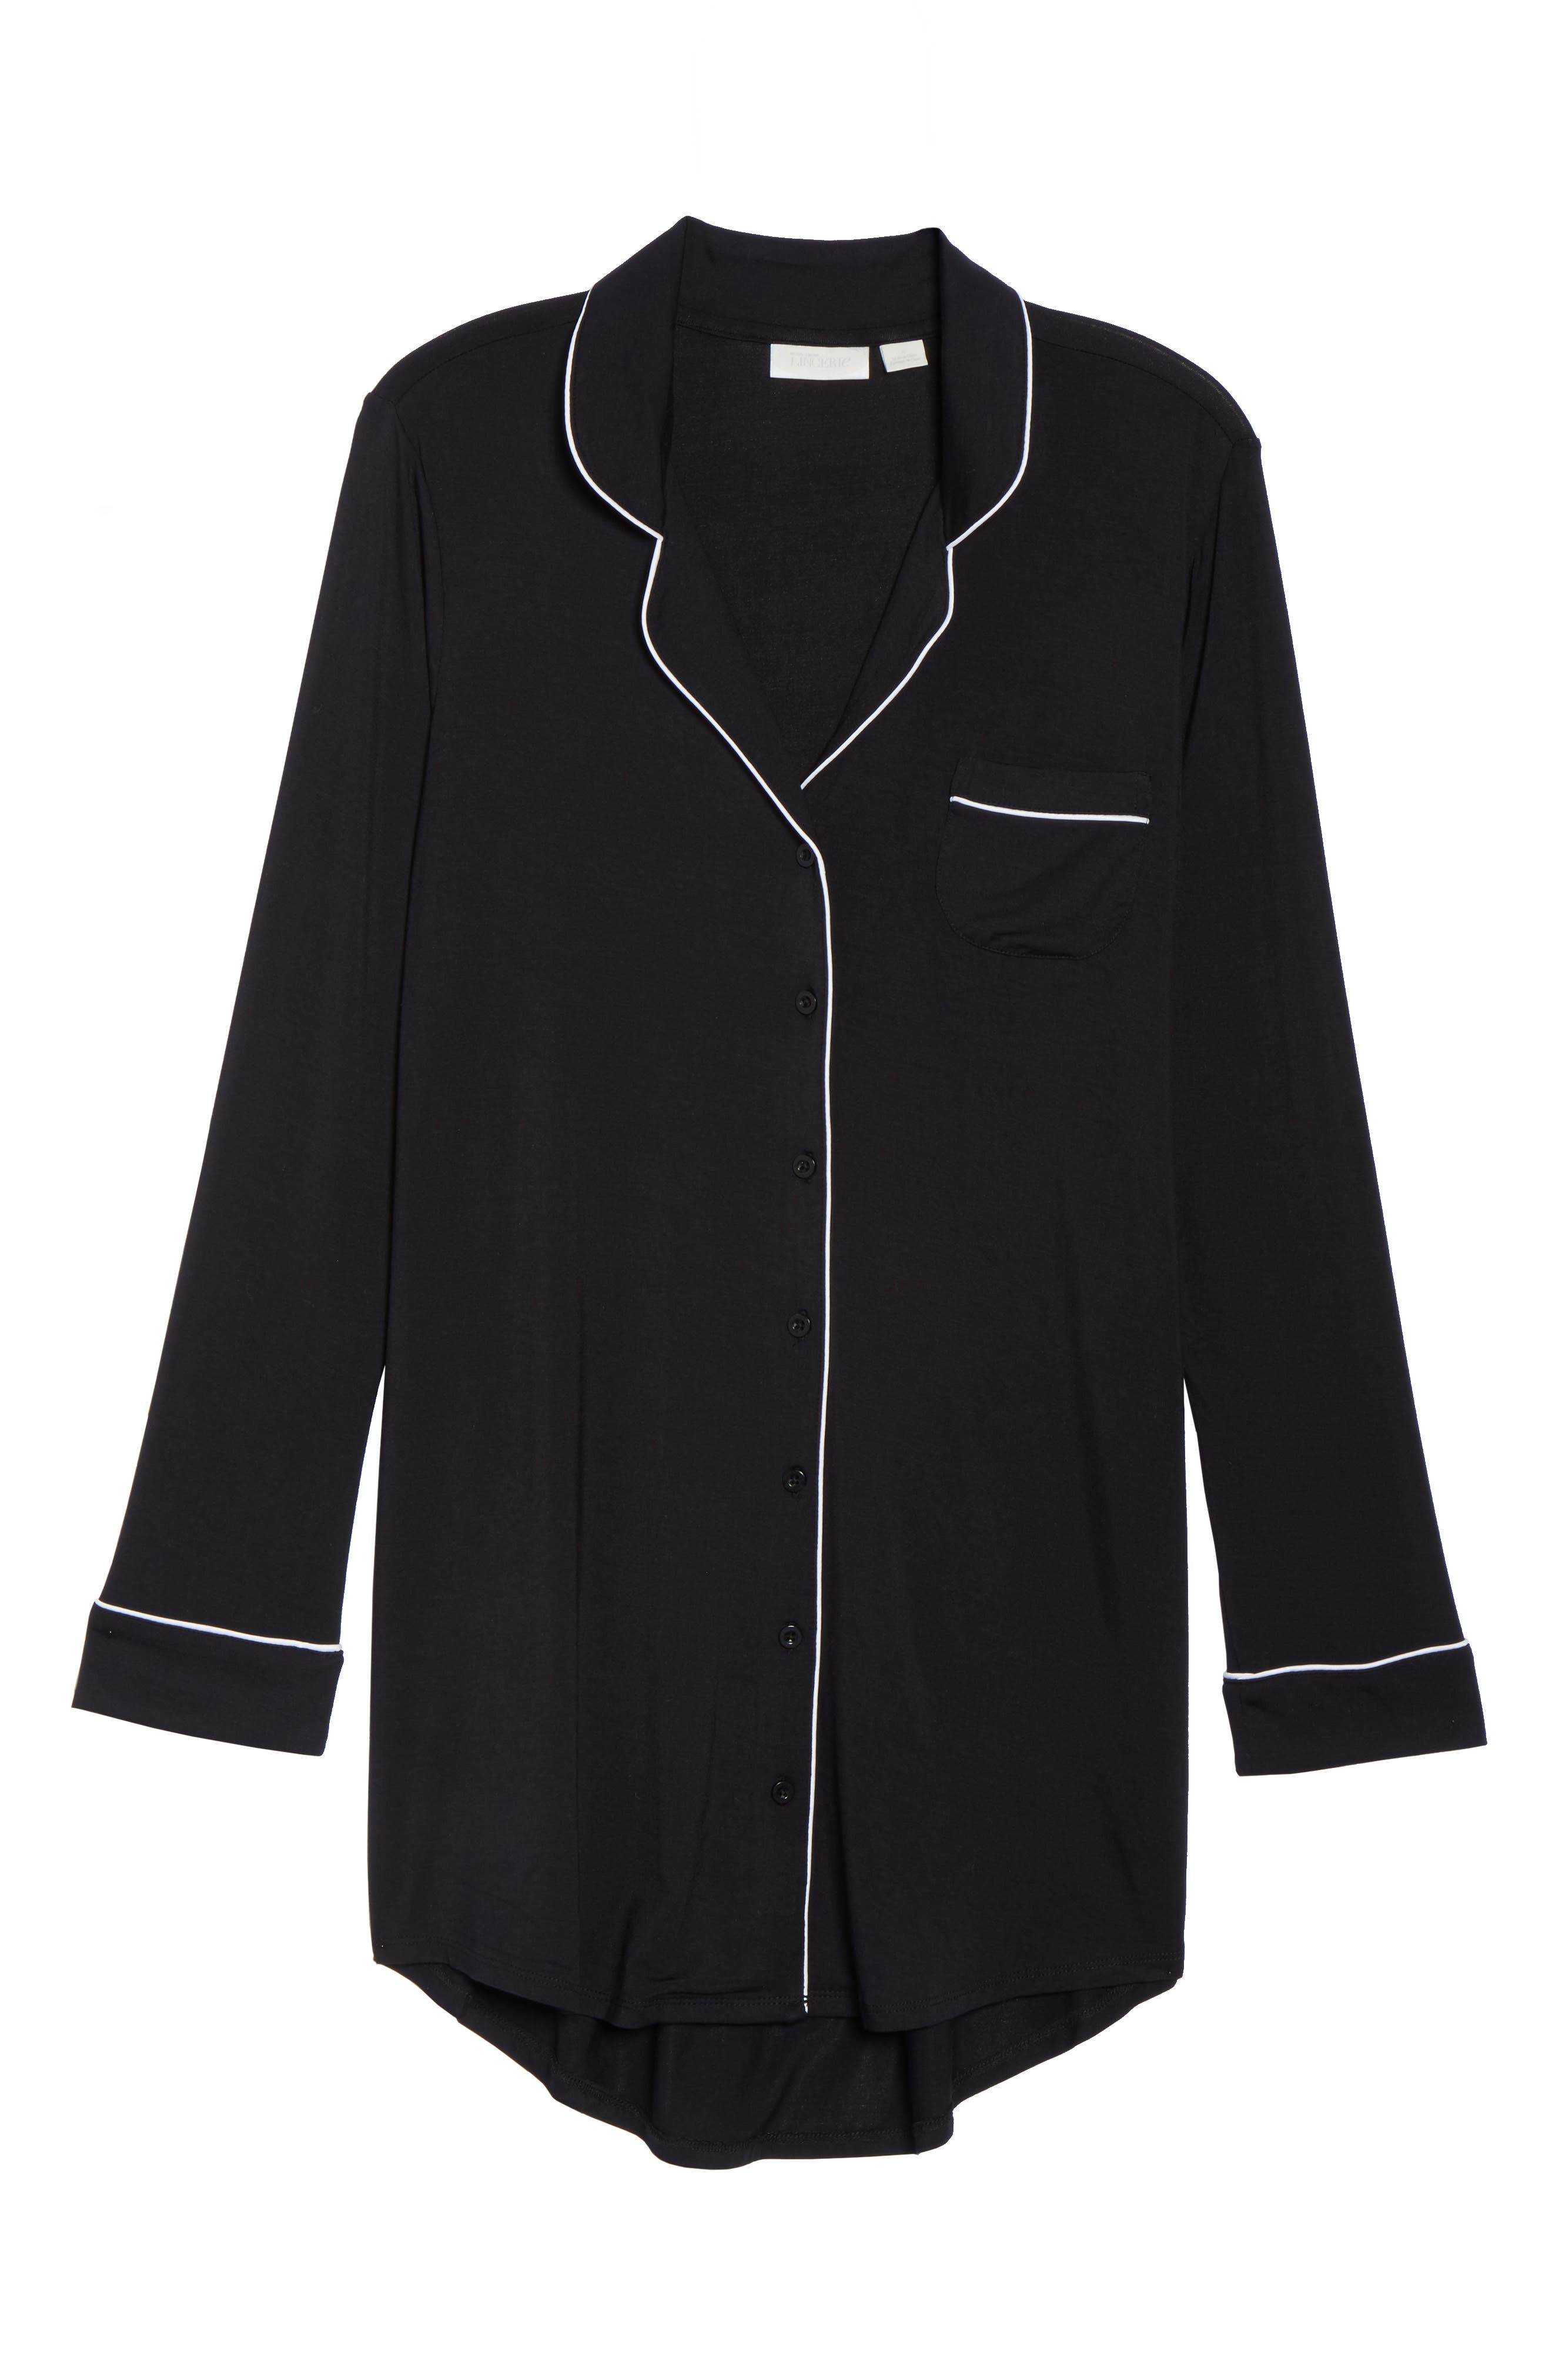 'Moonlight' Nightshirt,                             Alternate thumbnail 6, color,                             BLACK